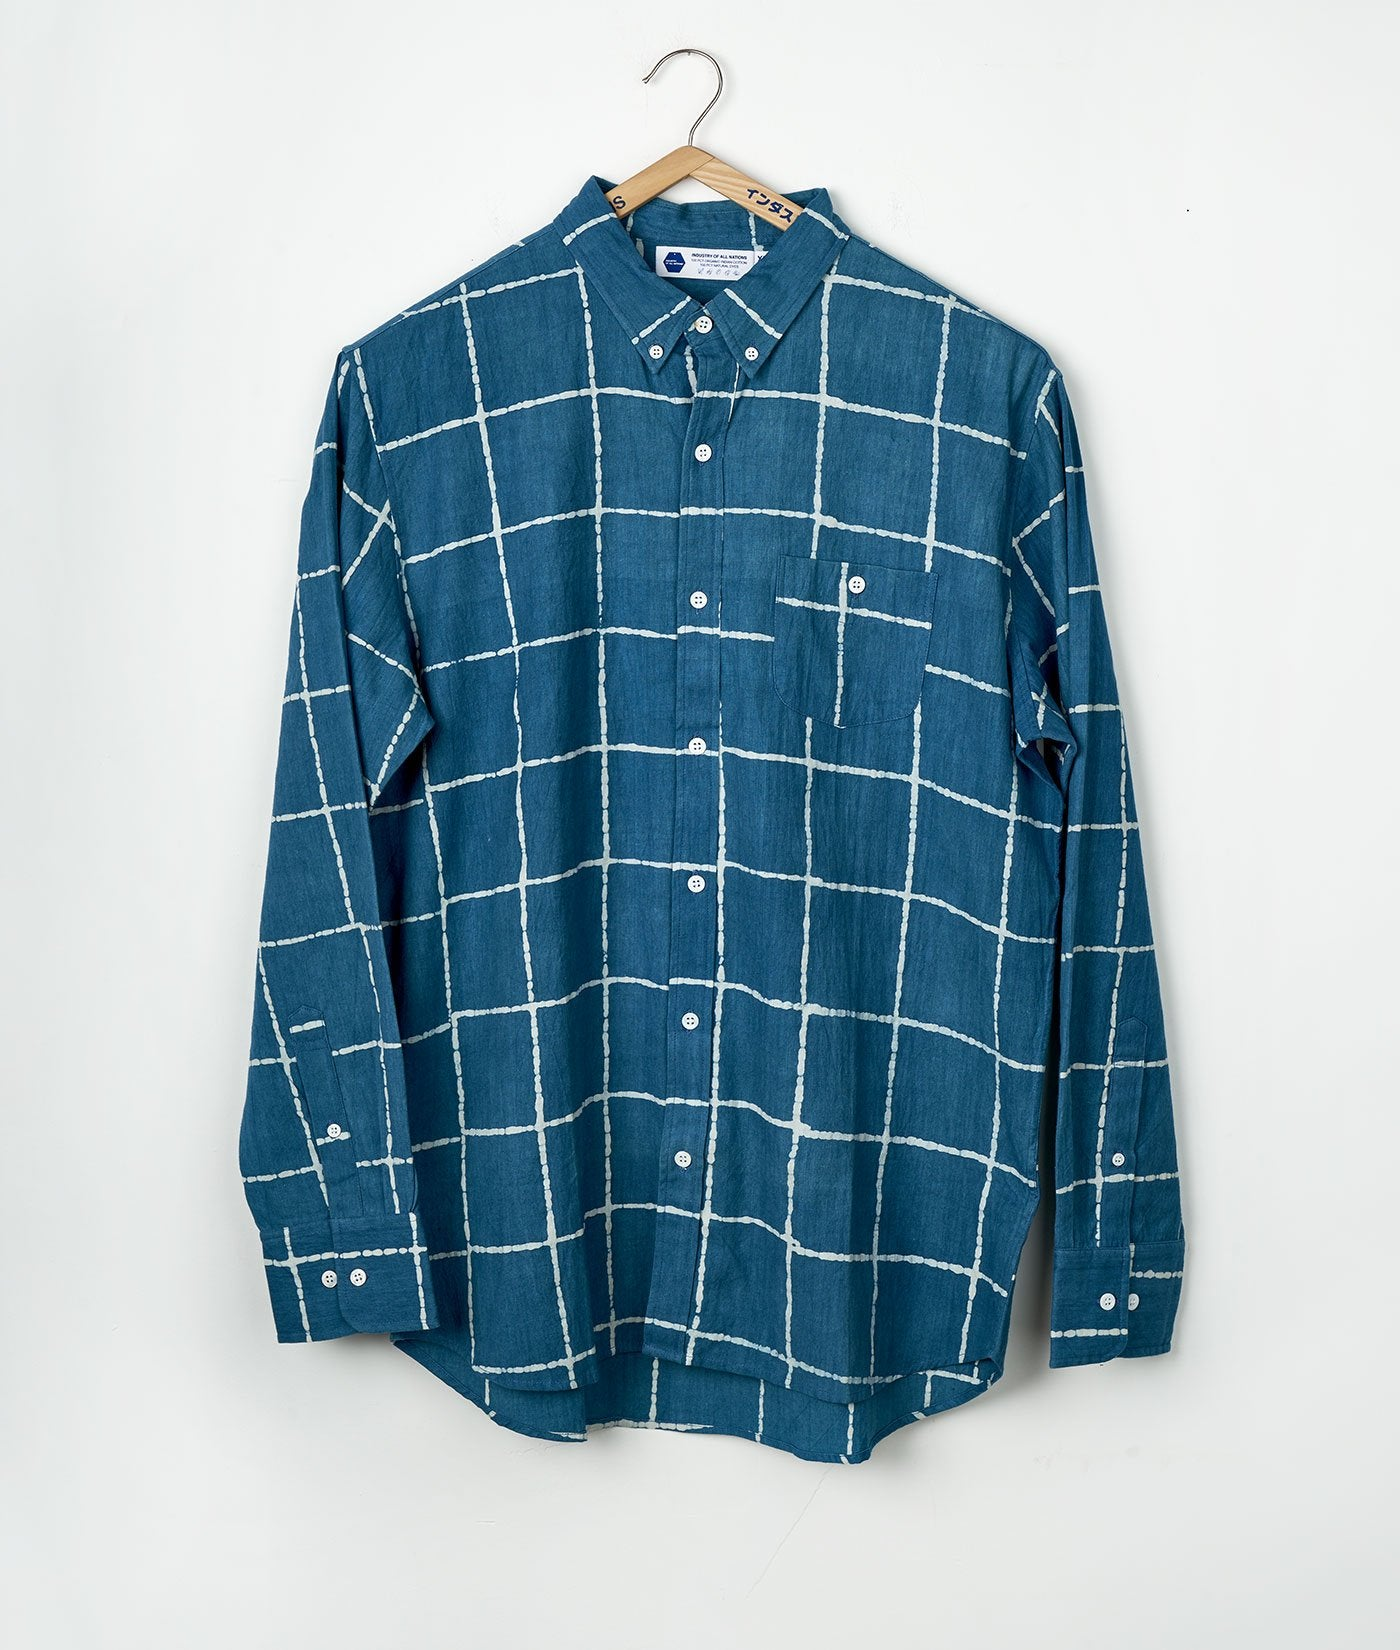 Classic Madras Shirt - Heavy Long Sleeve - Batik Squares